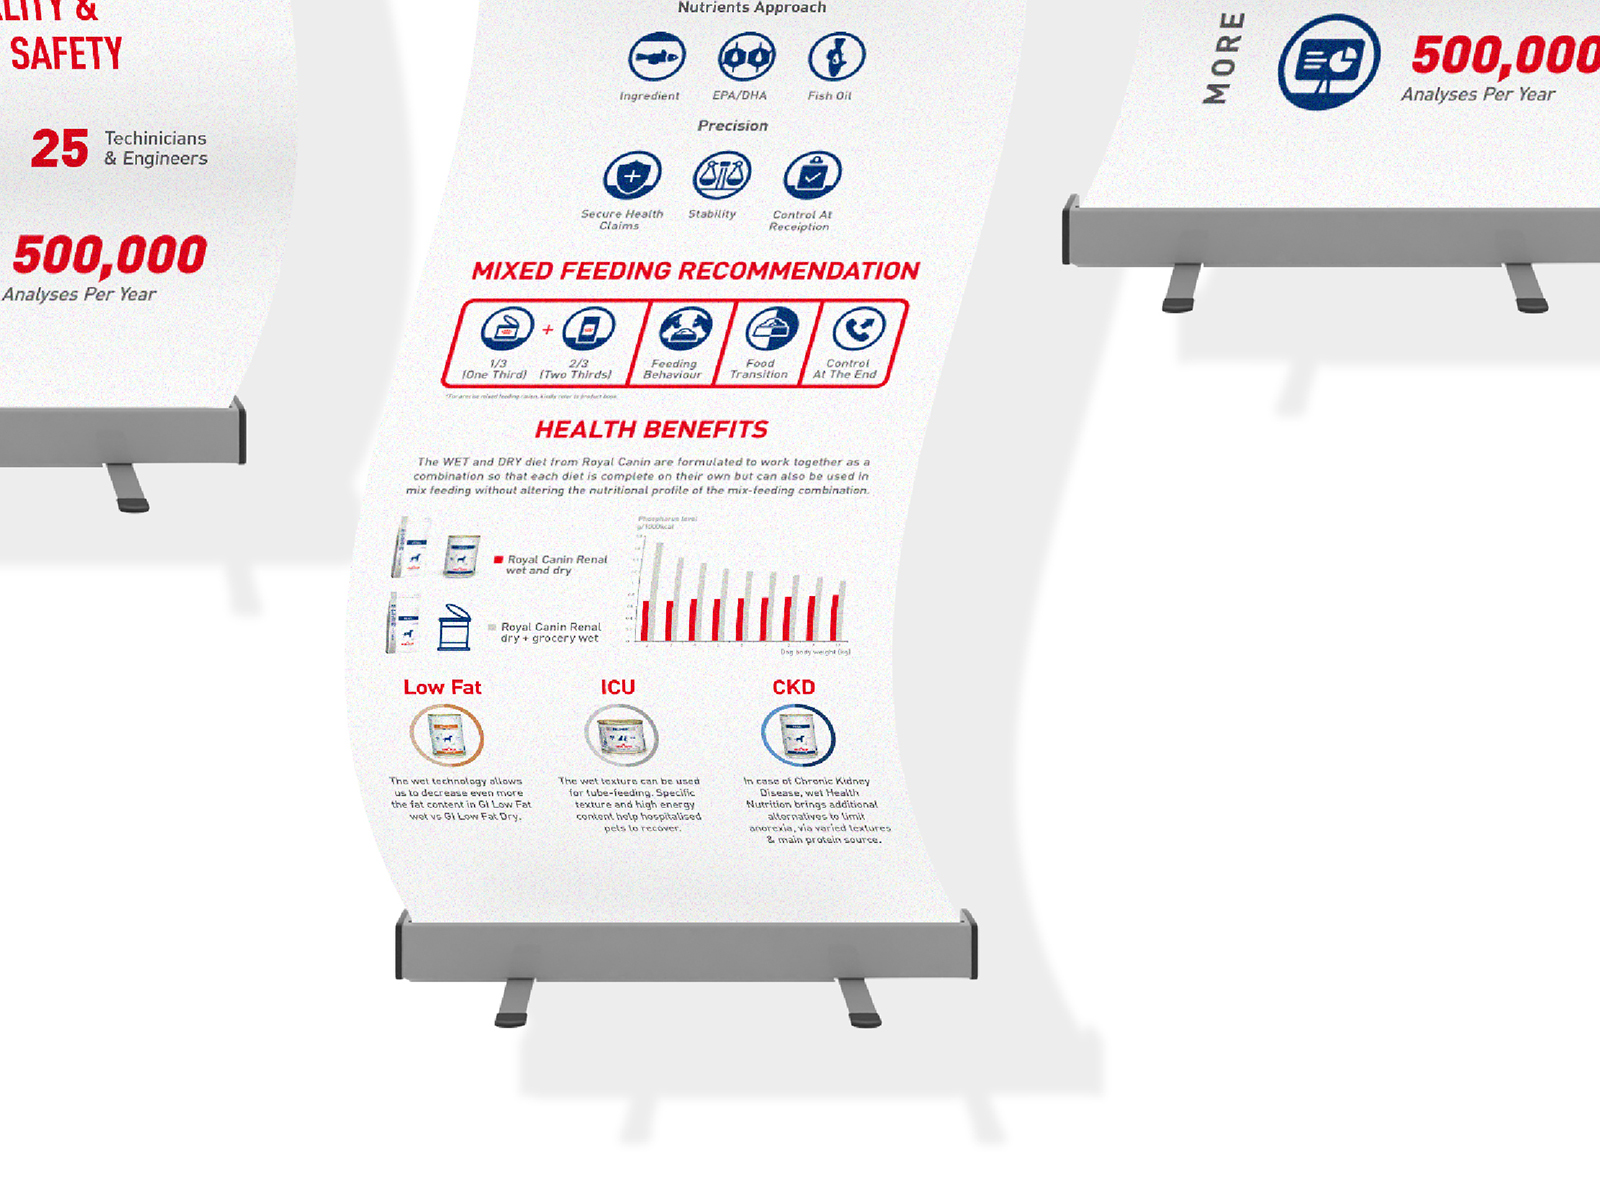 Royal Canin branding bunting that speaks of the benefit of mixed feeding